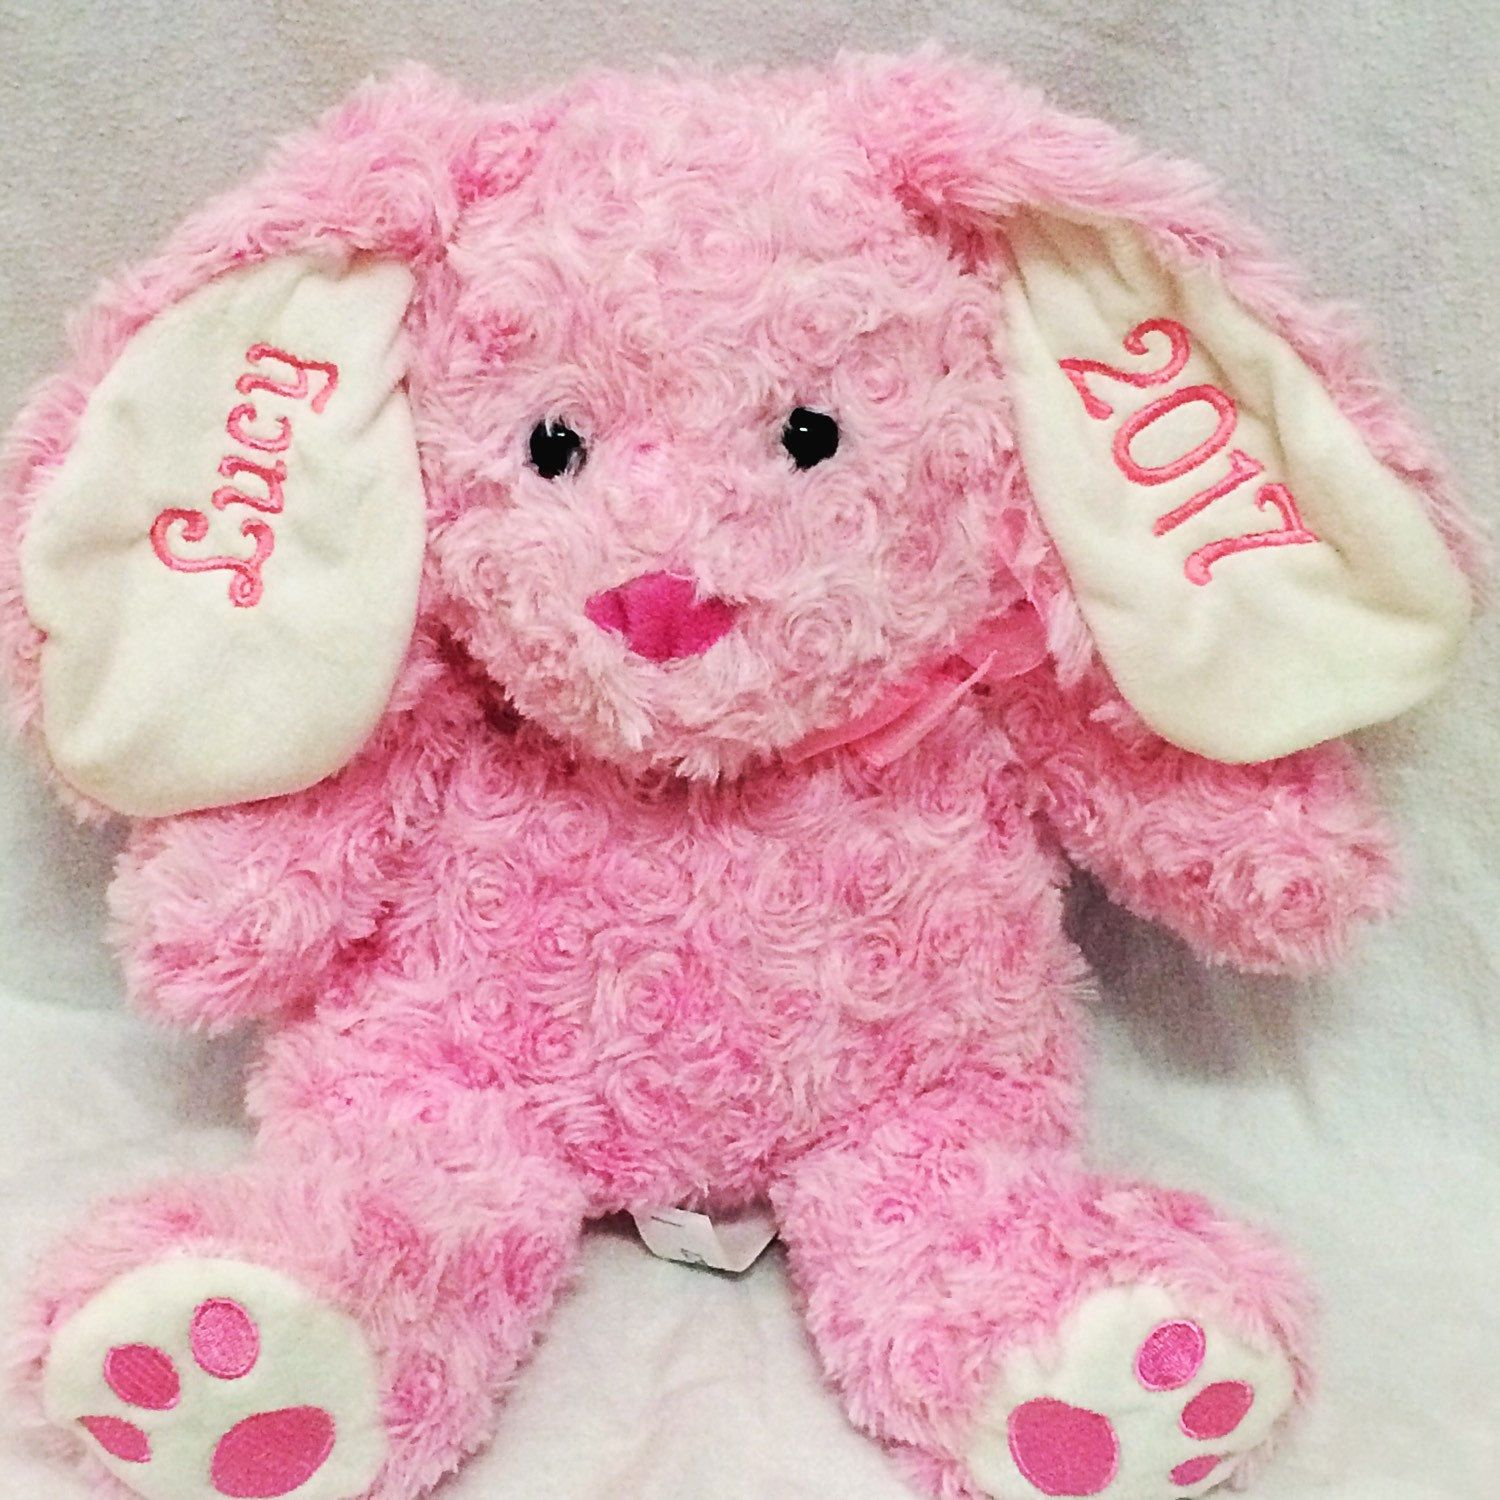 Personalized embroidered 2018 stuffed easter bunny easter gift this sweet easter or new baby gift comes in 7 different colors perfect for any navy or young kiddos easter basket negle Image collections